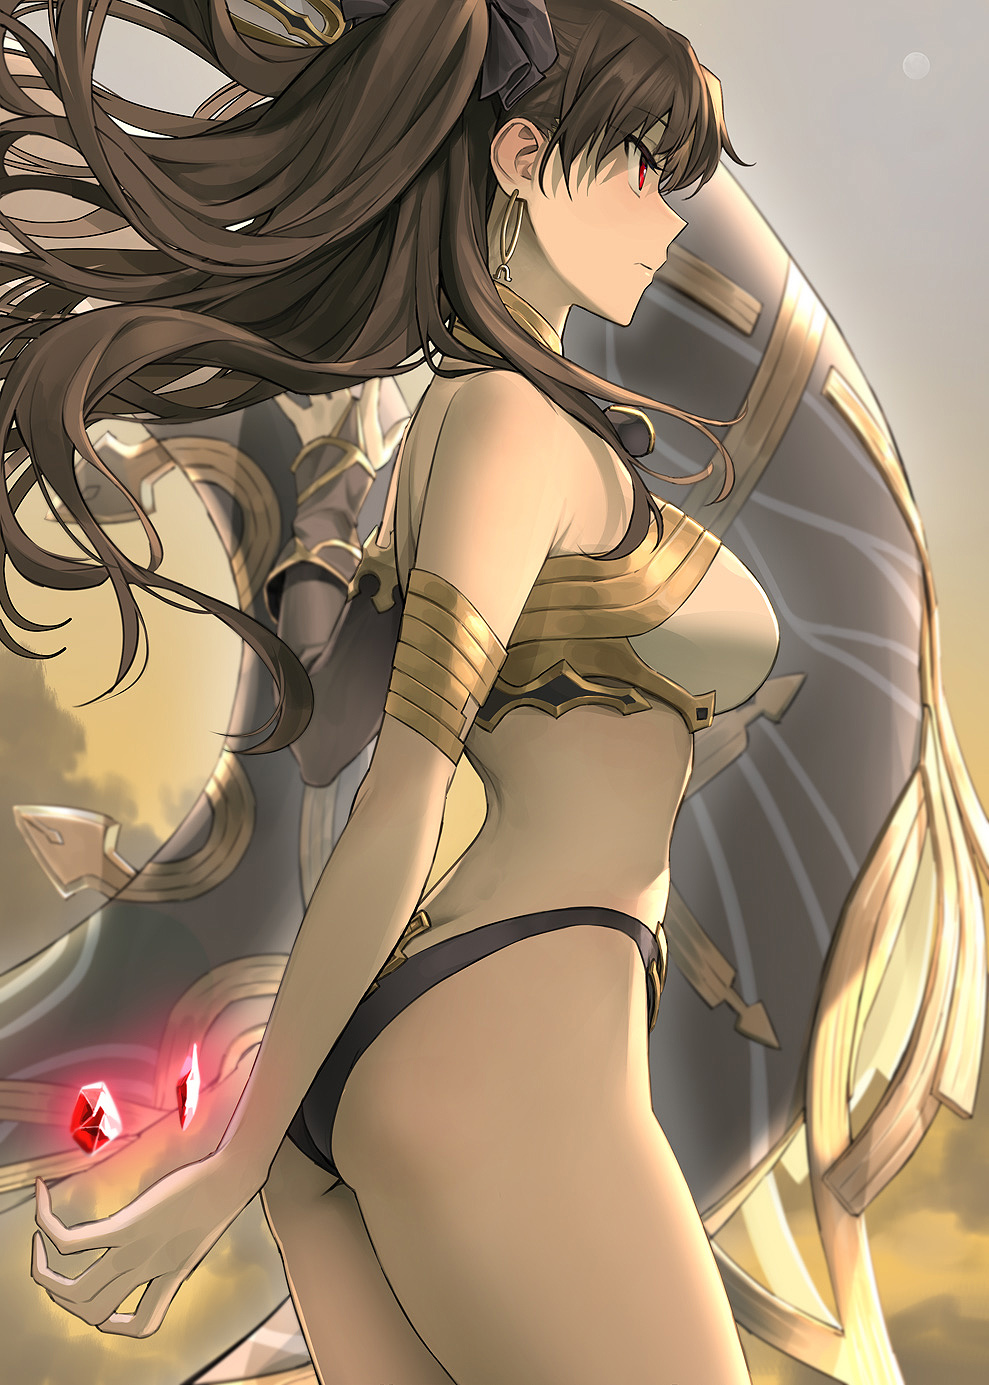 1girl armlet ass asymmetrical_sleeves back bangs bare_shoulders black_bow black_hair bow breasts closed_mouth earrings fate/grand_order fate_(series) gem gold_trim hair_bow heavenly_boat_maanna highres hoop_earrings hyury ishtar_(fate)_(all) ishtar_(fate/grand_order) jewelry large_breasts long_hair red_eyes ruby_(gemstone) thighs tiara weapon